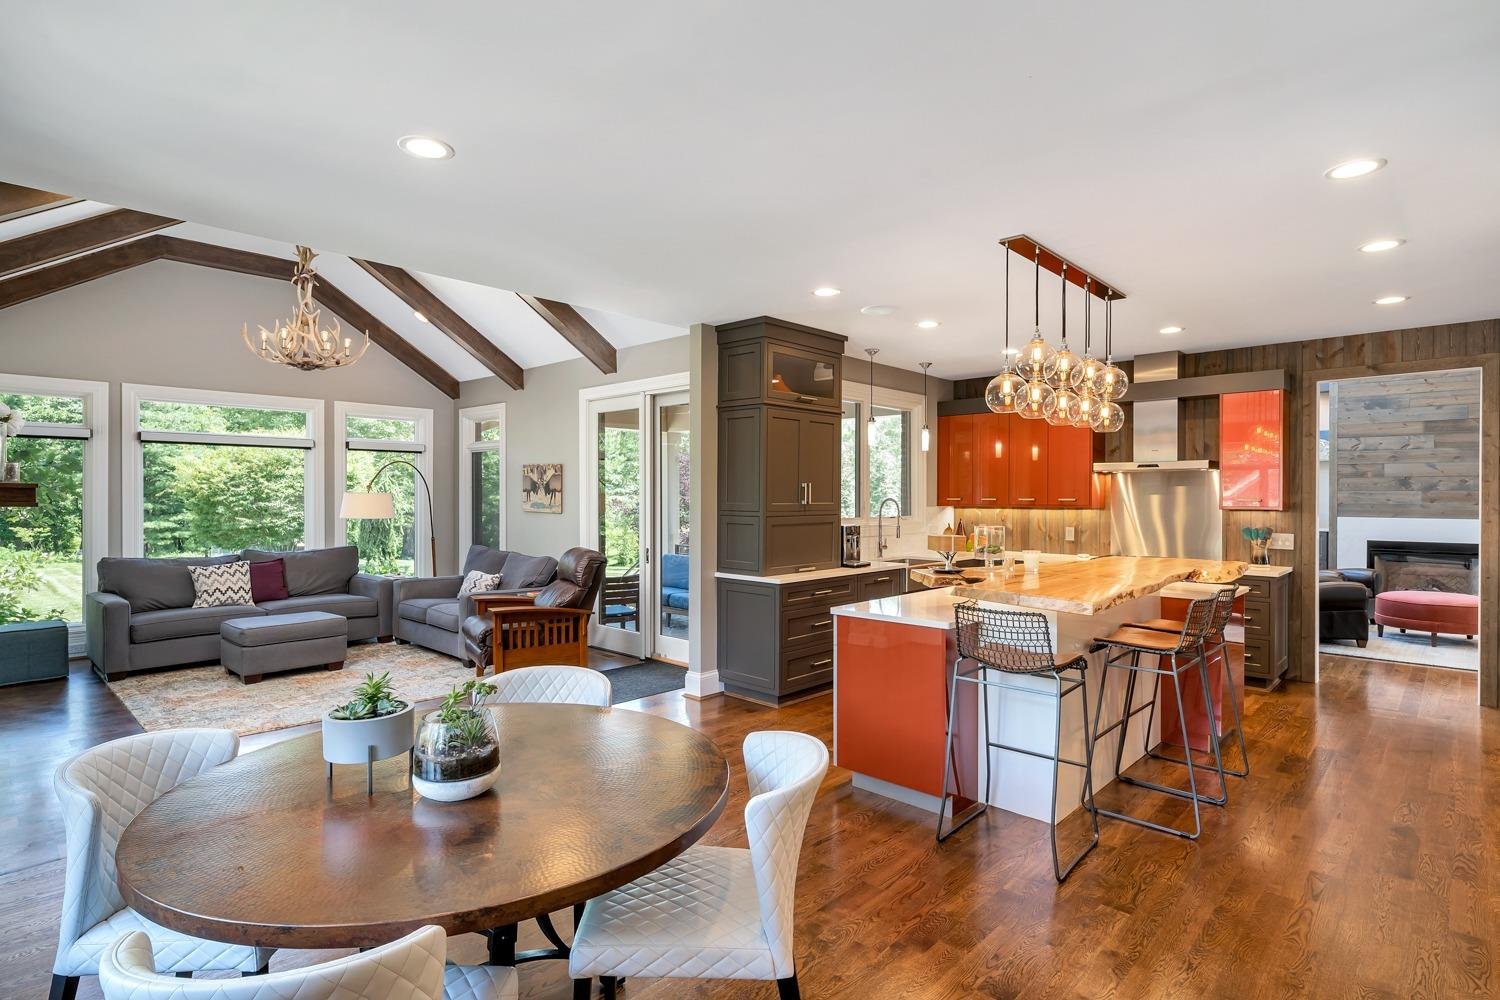 Fantastic view of the kitchen, eat-in area, and hearth room.